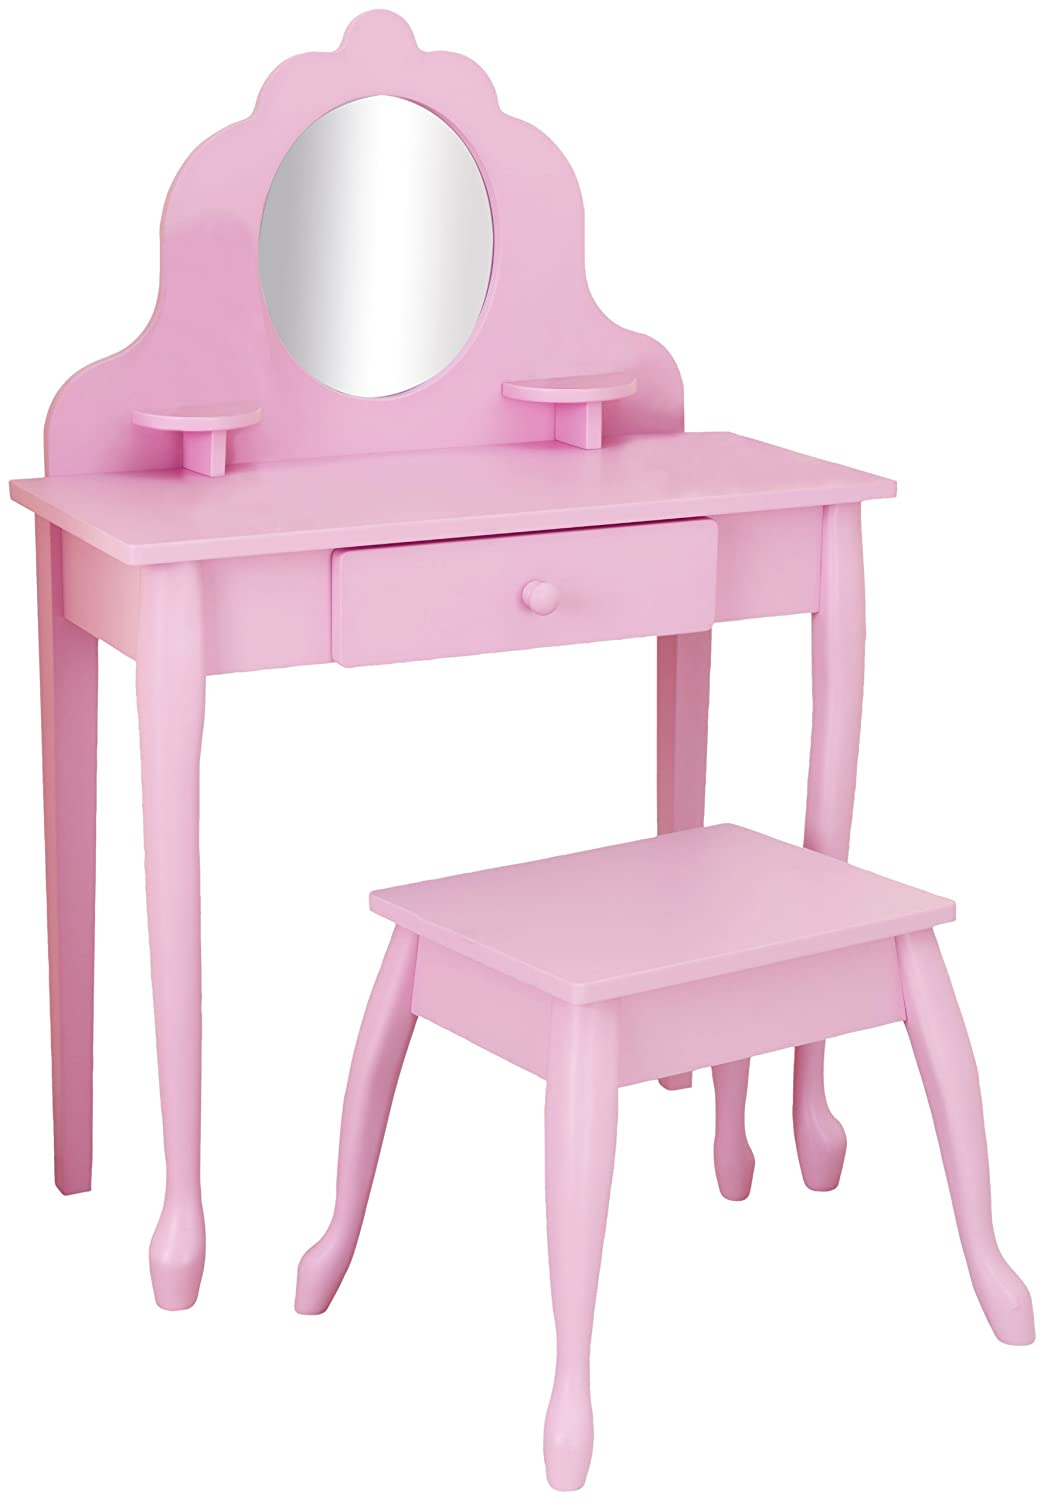 Pink medium diva table stool vanity make up girl play room wooden every little girl needs a vanity table geotapseo Images